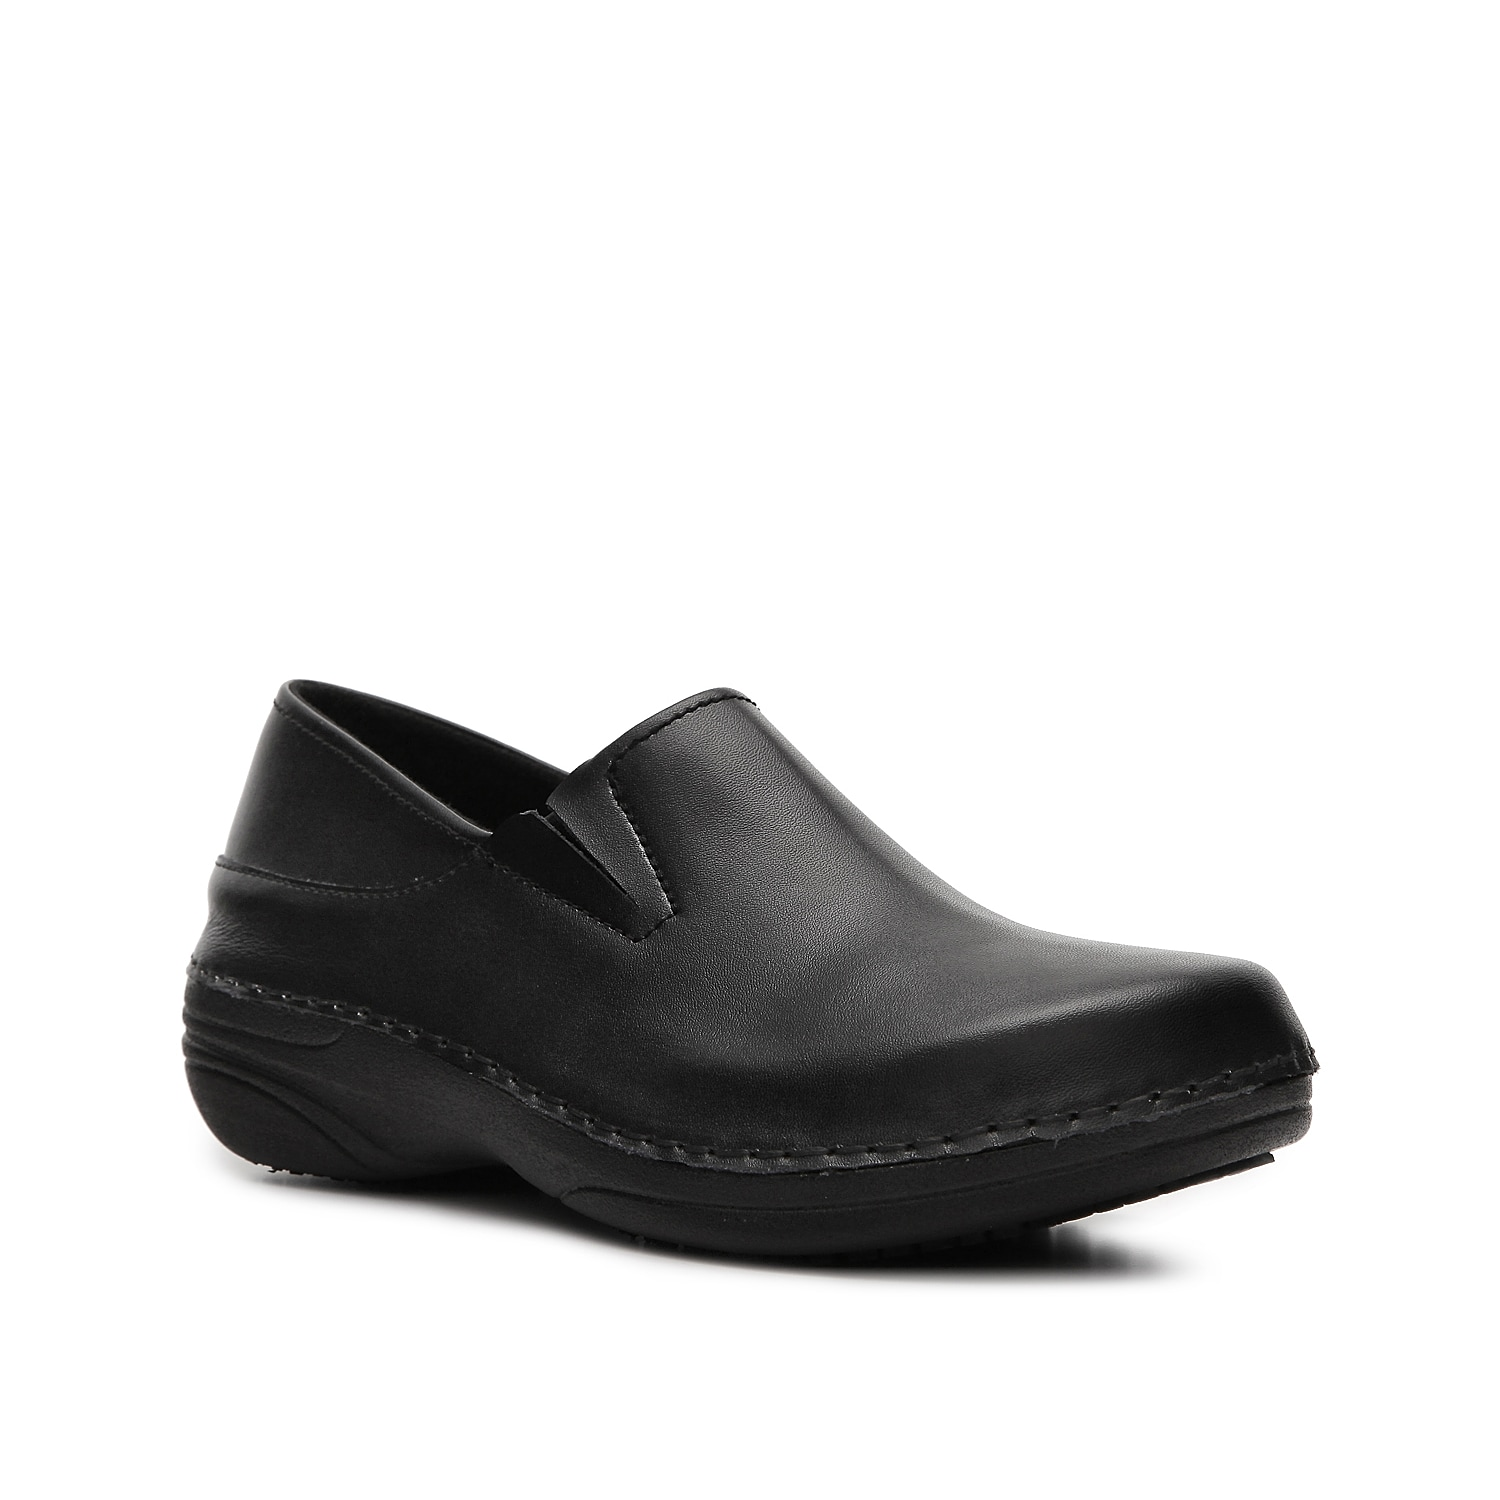 Durable and comfortable describe the Spring Step Manila duty shoe. This slip-on features an oil resistant sole and comfort cushioning making it great for those long days at work.